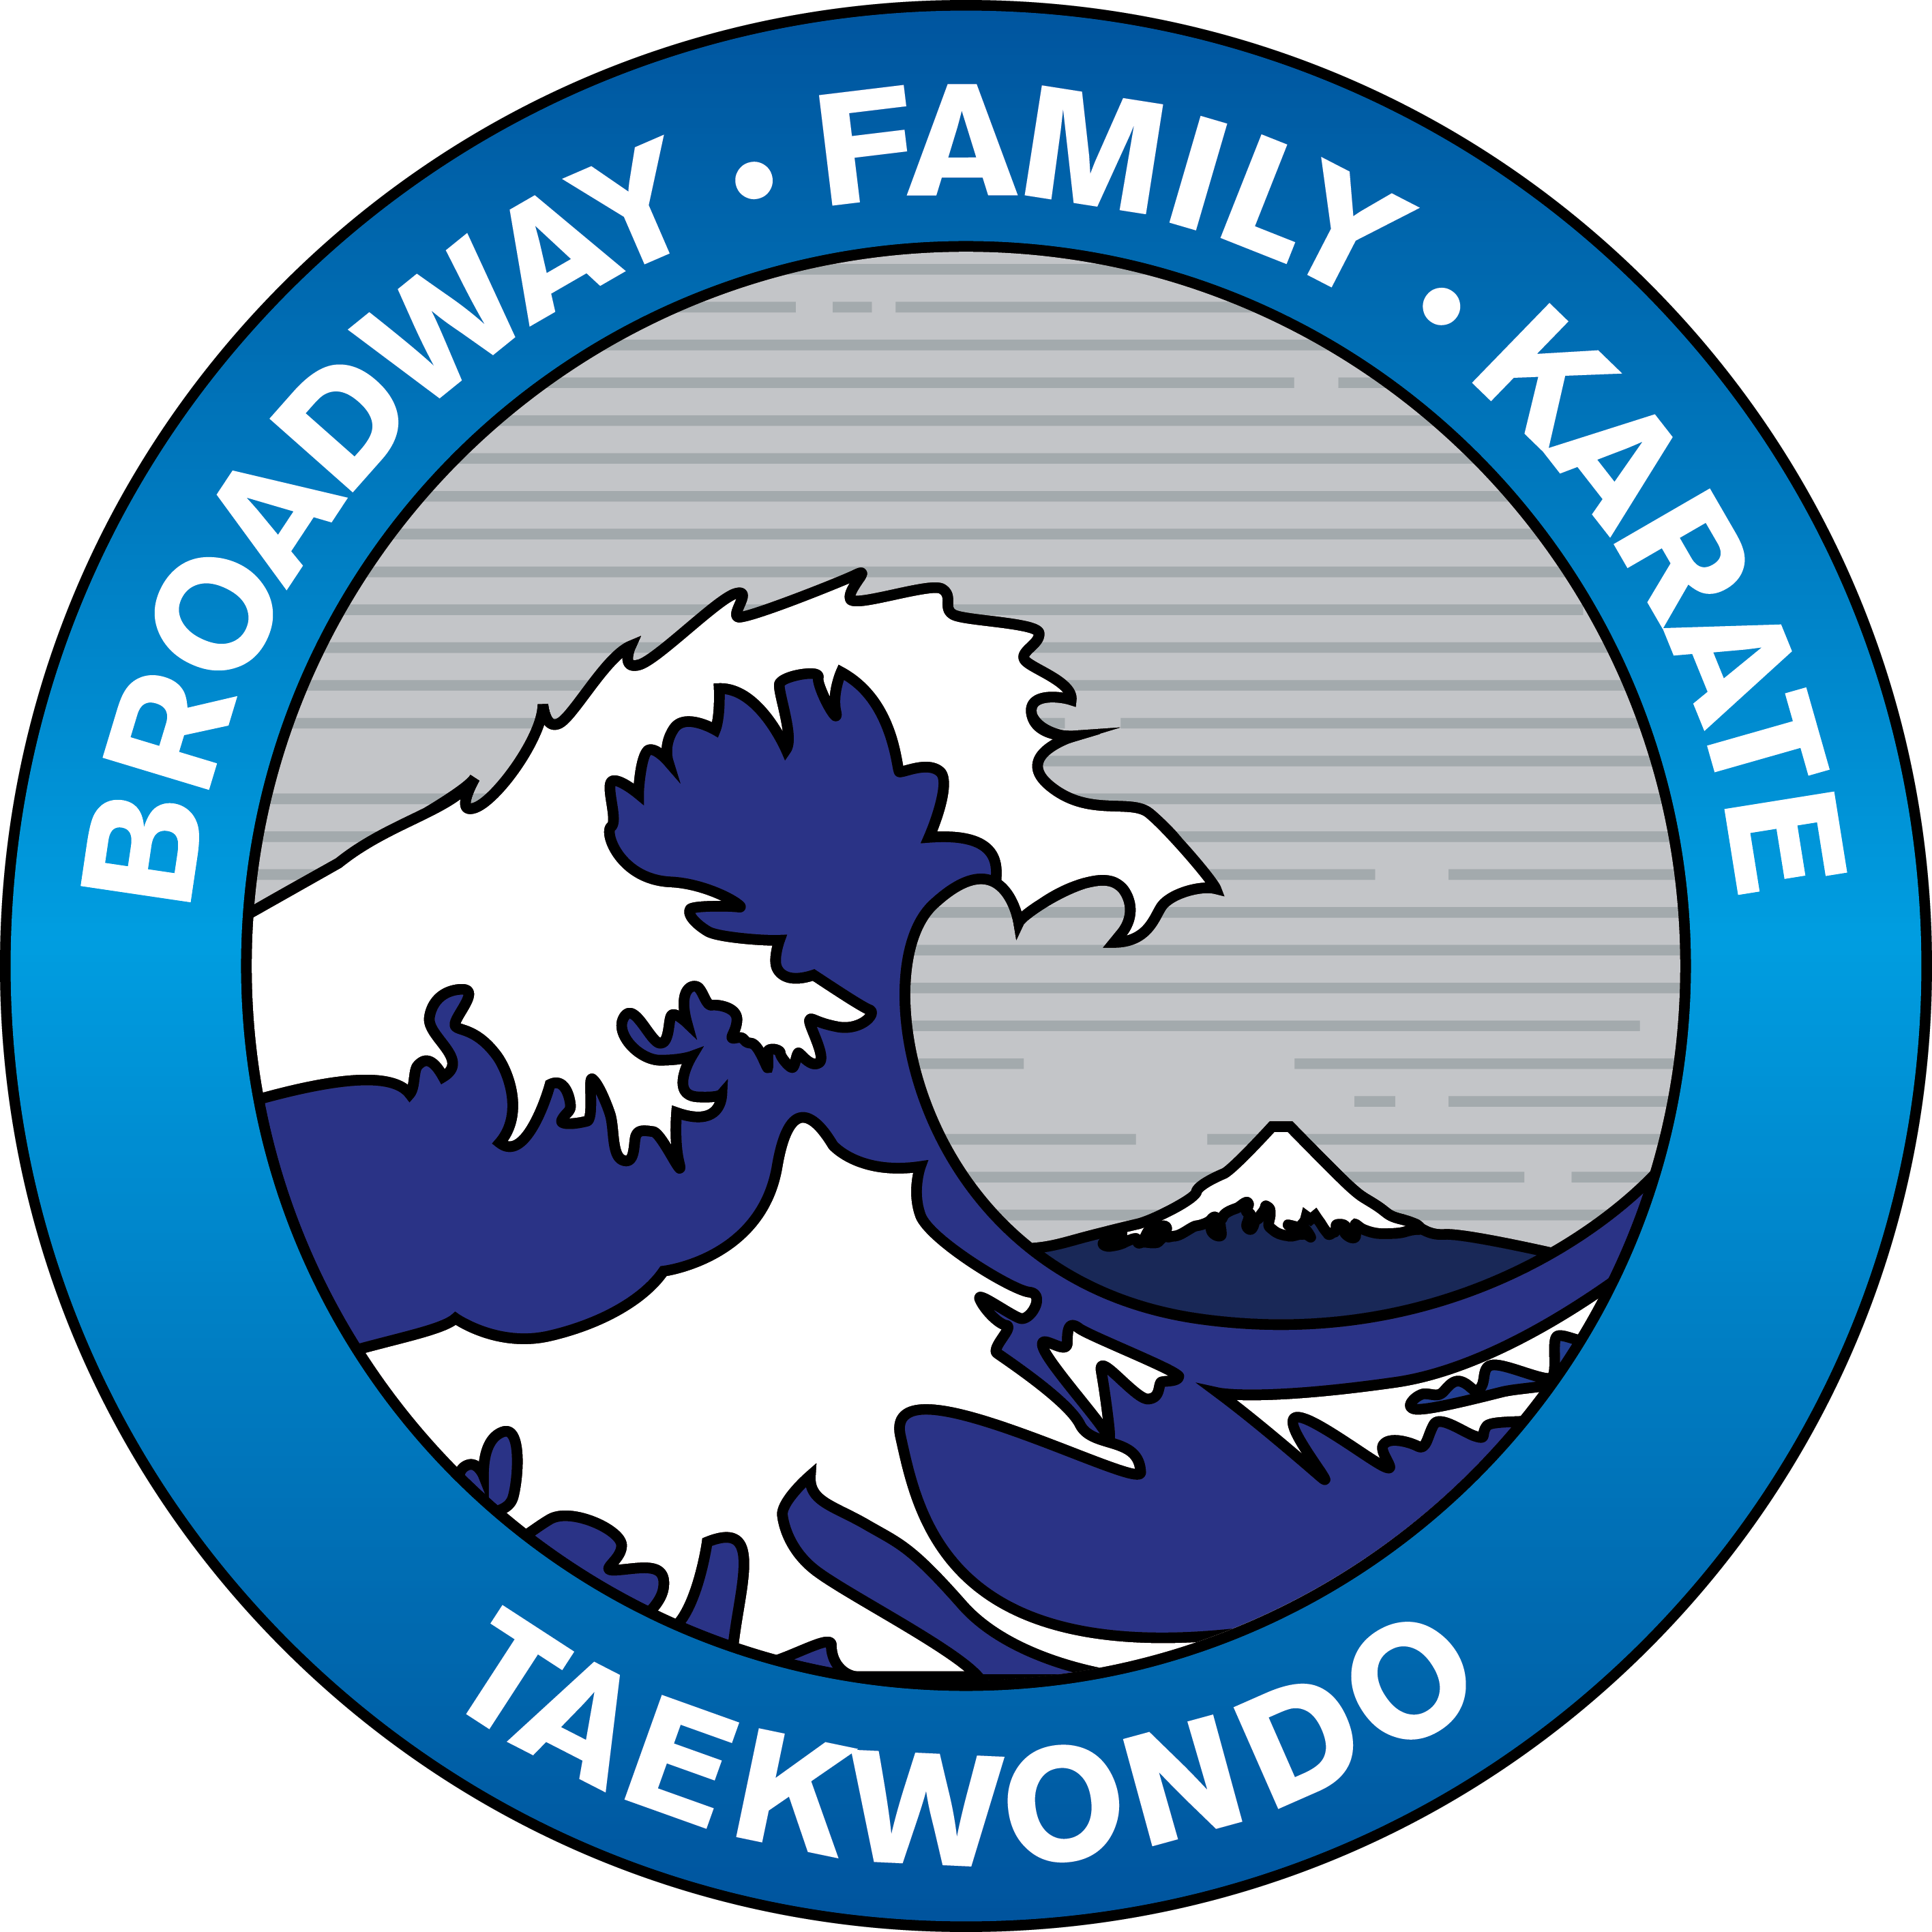 Broadway Family Karate - Knoxville, TN - Martial Arts Instruction